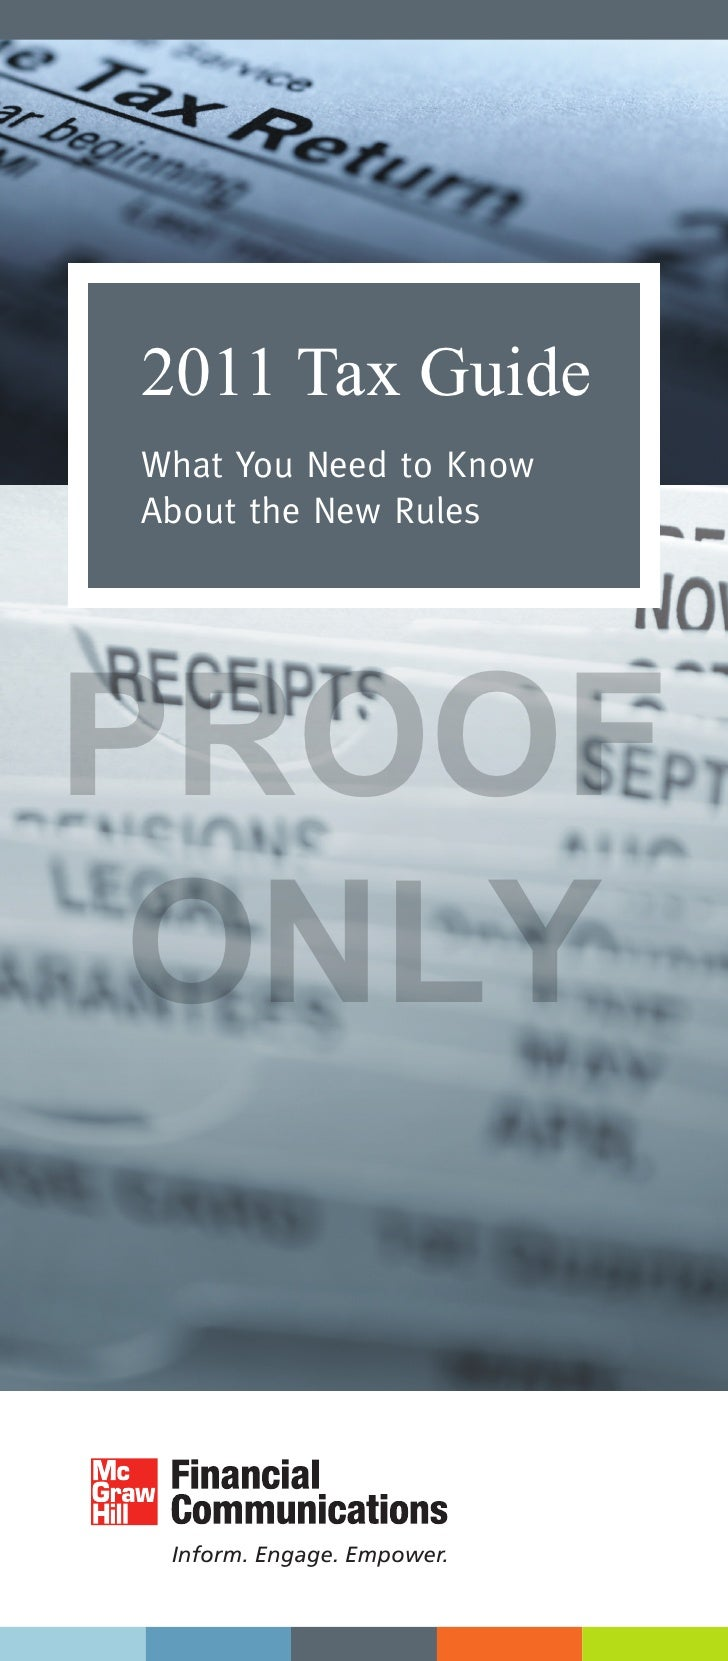 2011 Tax GuideWhat You Need to KnowAbout the New RulesPROOF ONLY Inform. Engage. Empower.